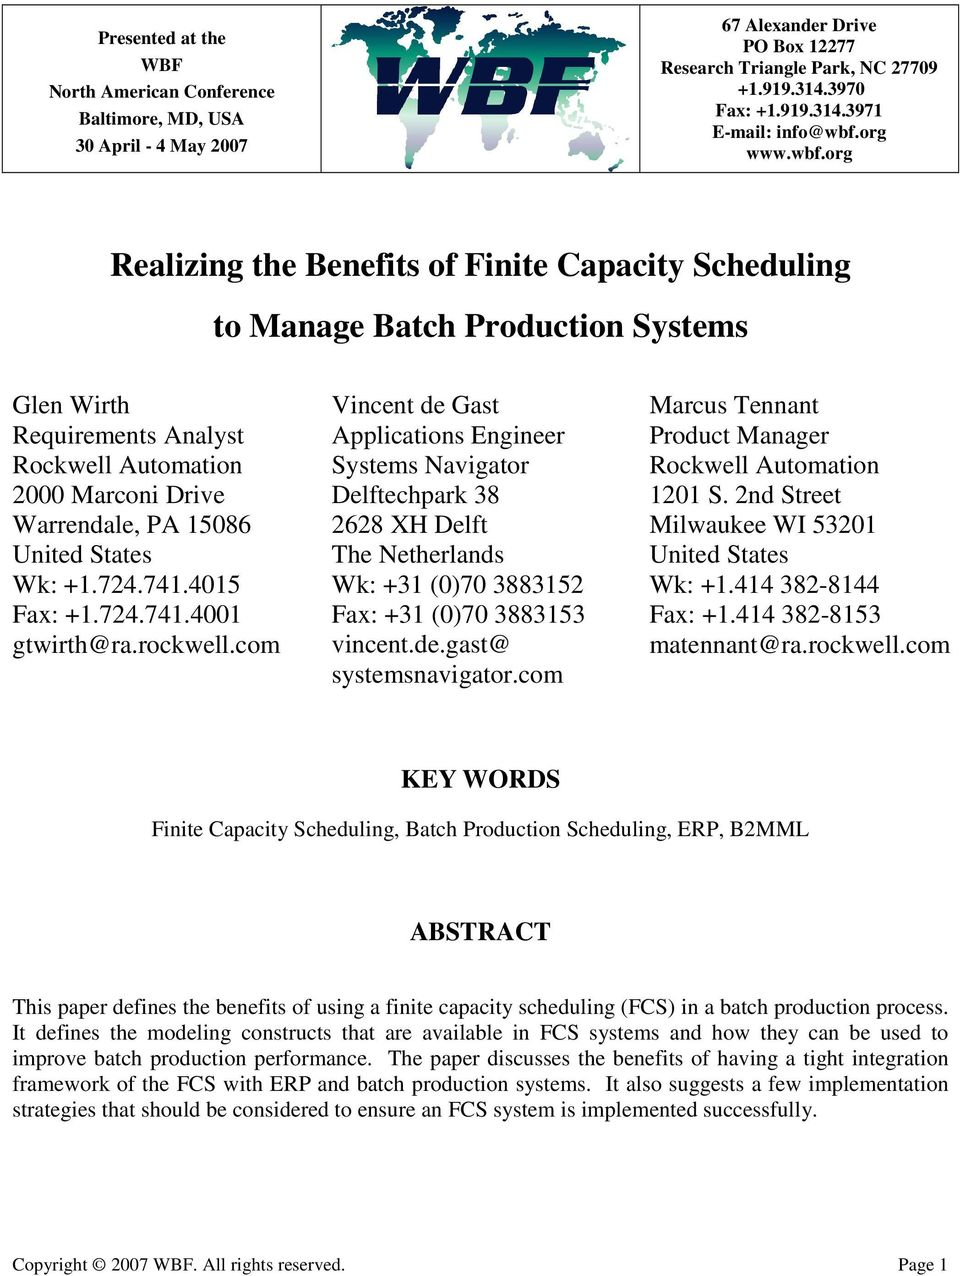 org Realizing the Benefits of Finite Capacity Scheduling to Manage Batch Production Systems Glen Wirth Requirements Analyst Rockwell Automation 2000 Marconi Drive Warrendale, PA 15086 United States